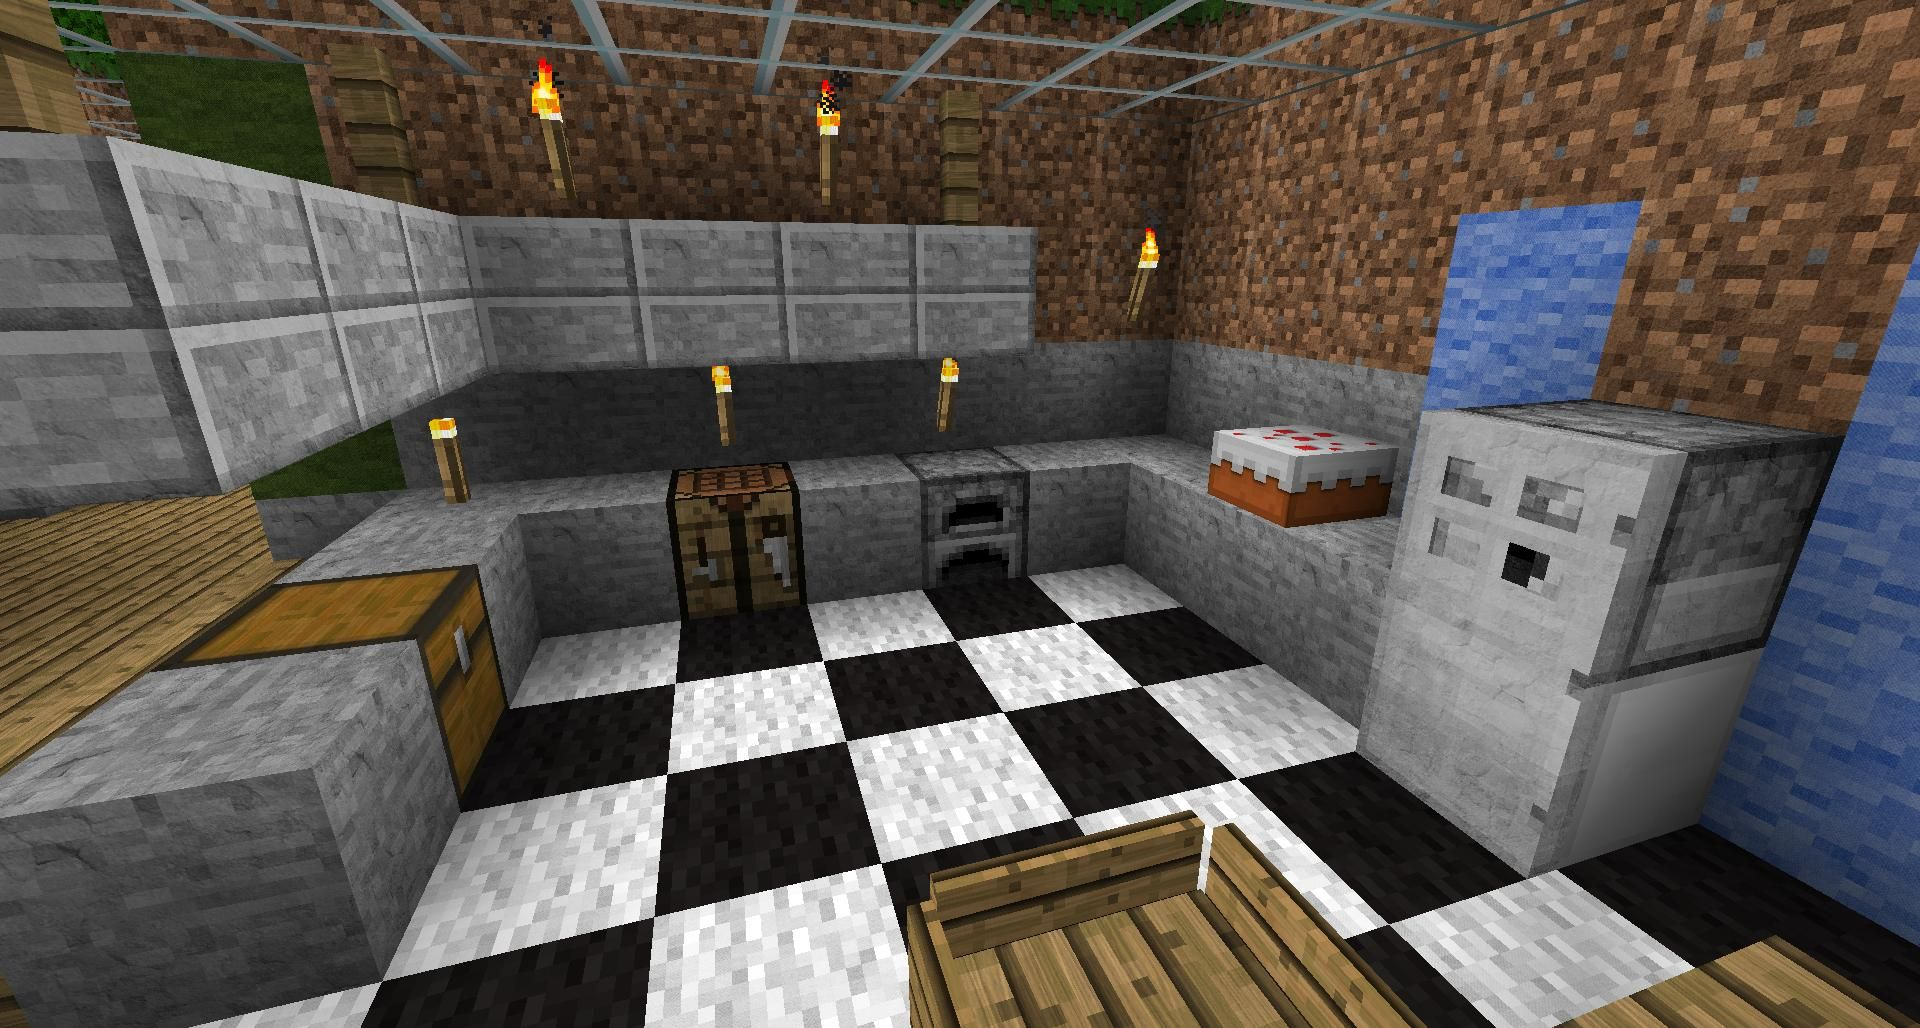 Kitchen Designs Survival Mode Minecraft Discussion Minecraft Forum Modern Minecraft Houses Minecraft Kitchen Ideas Easy Minecraft Houses